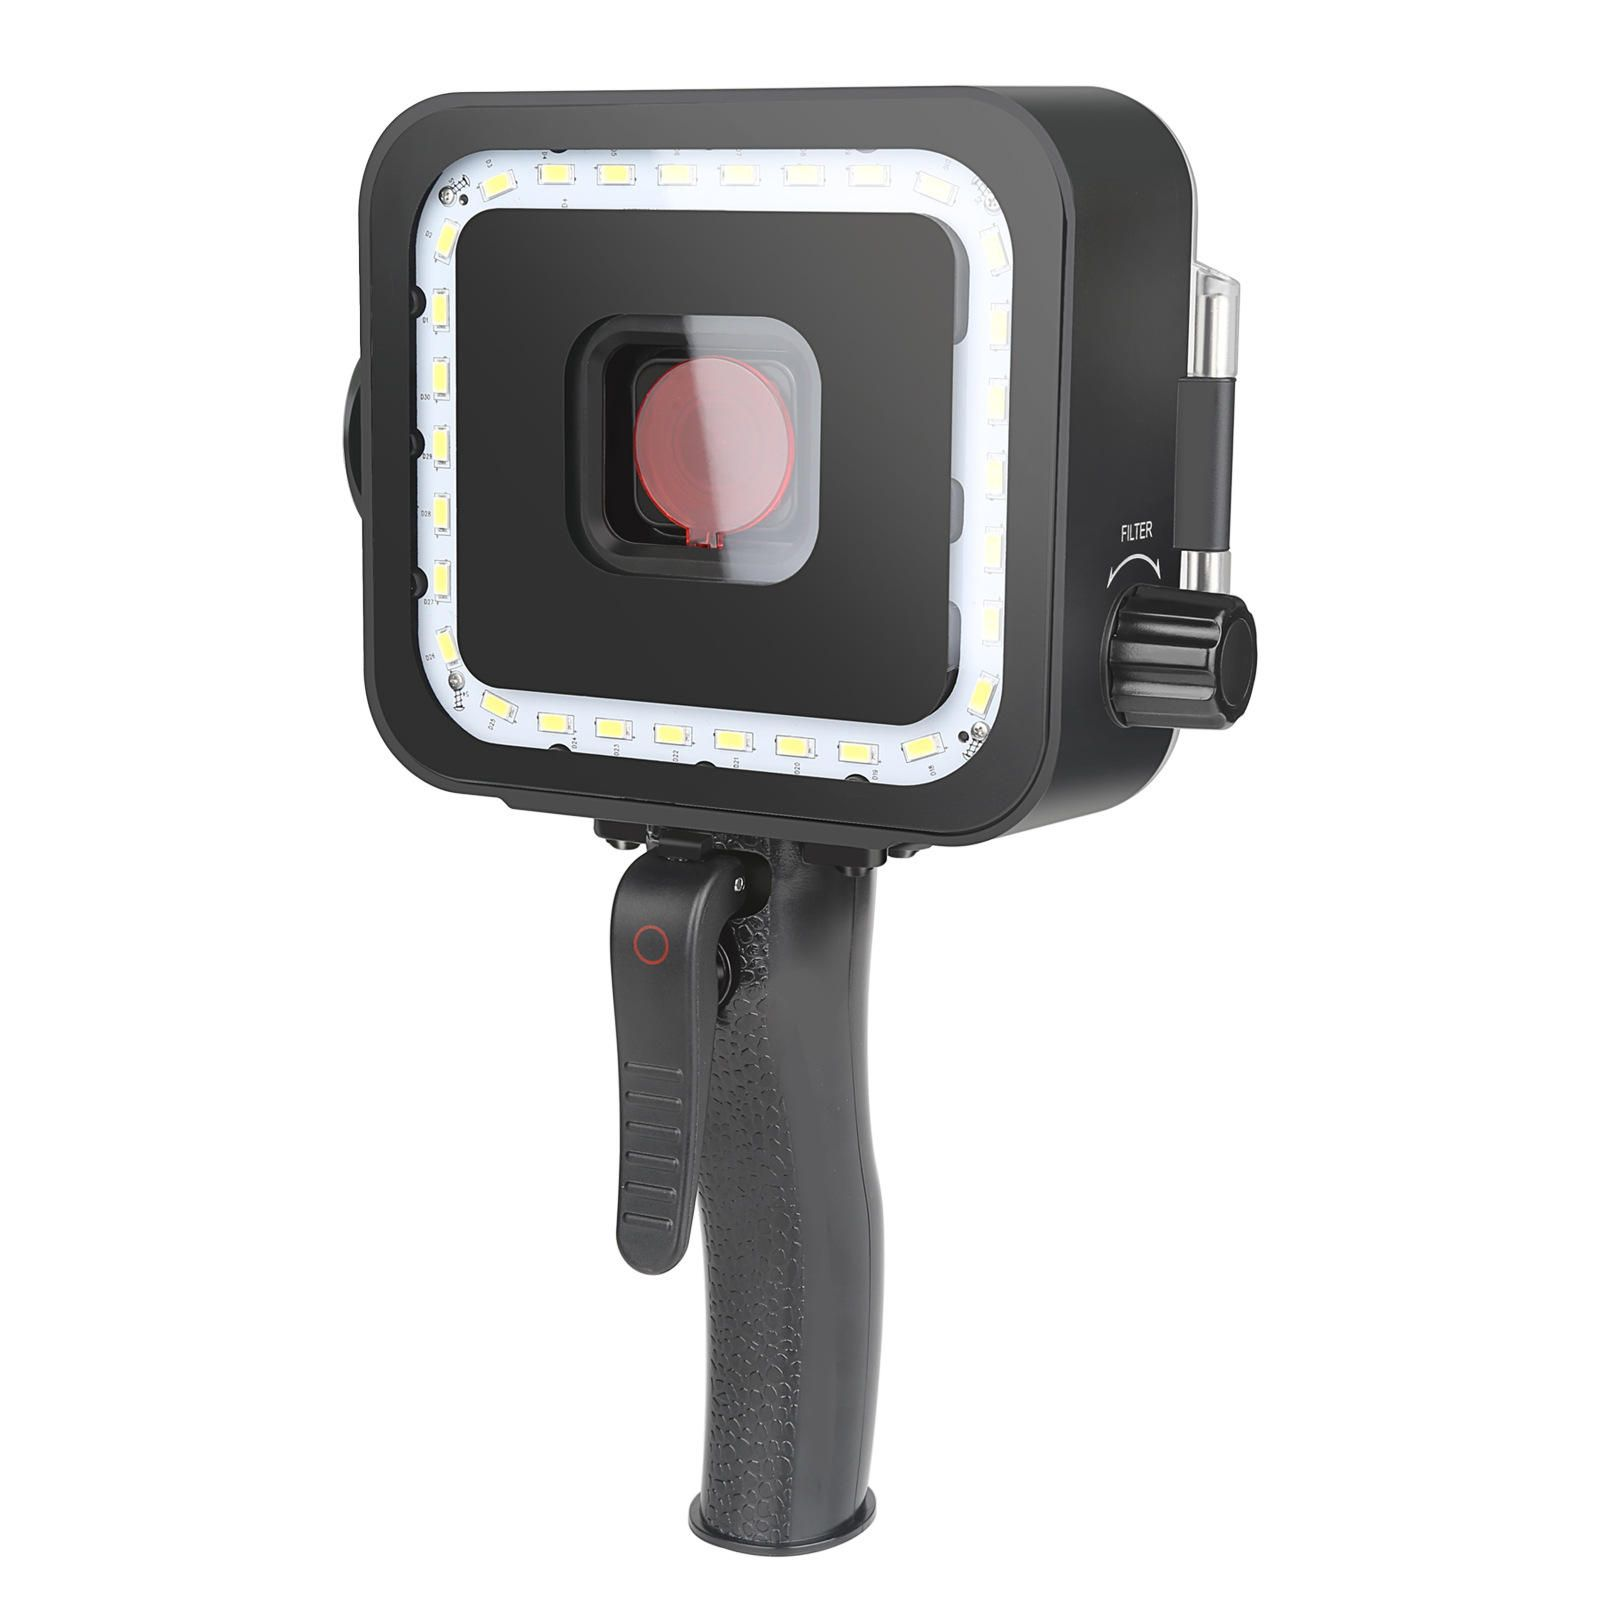 IJN US$50.48 Shoot XTGP540 35M Waterproof LED Lamp Diving Video Light with Red Filter for GoPro Hero 7 6 5 Black Action Sports Camera